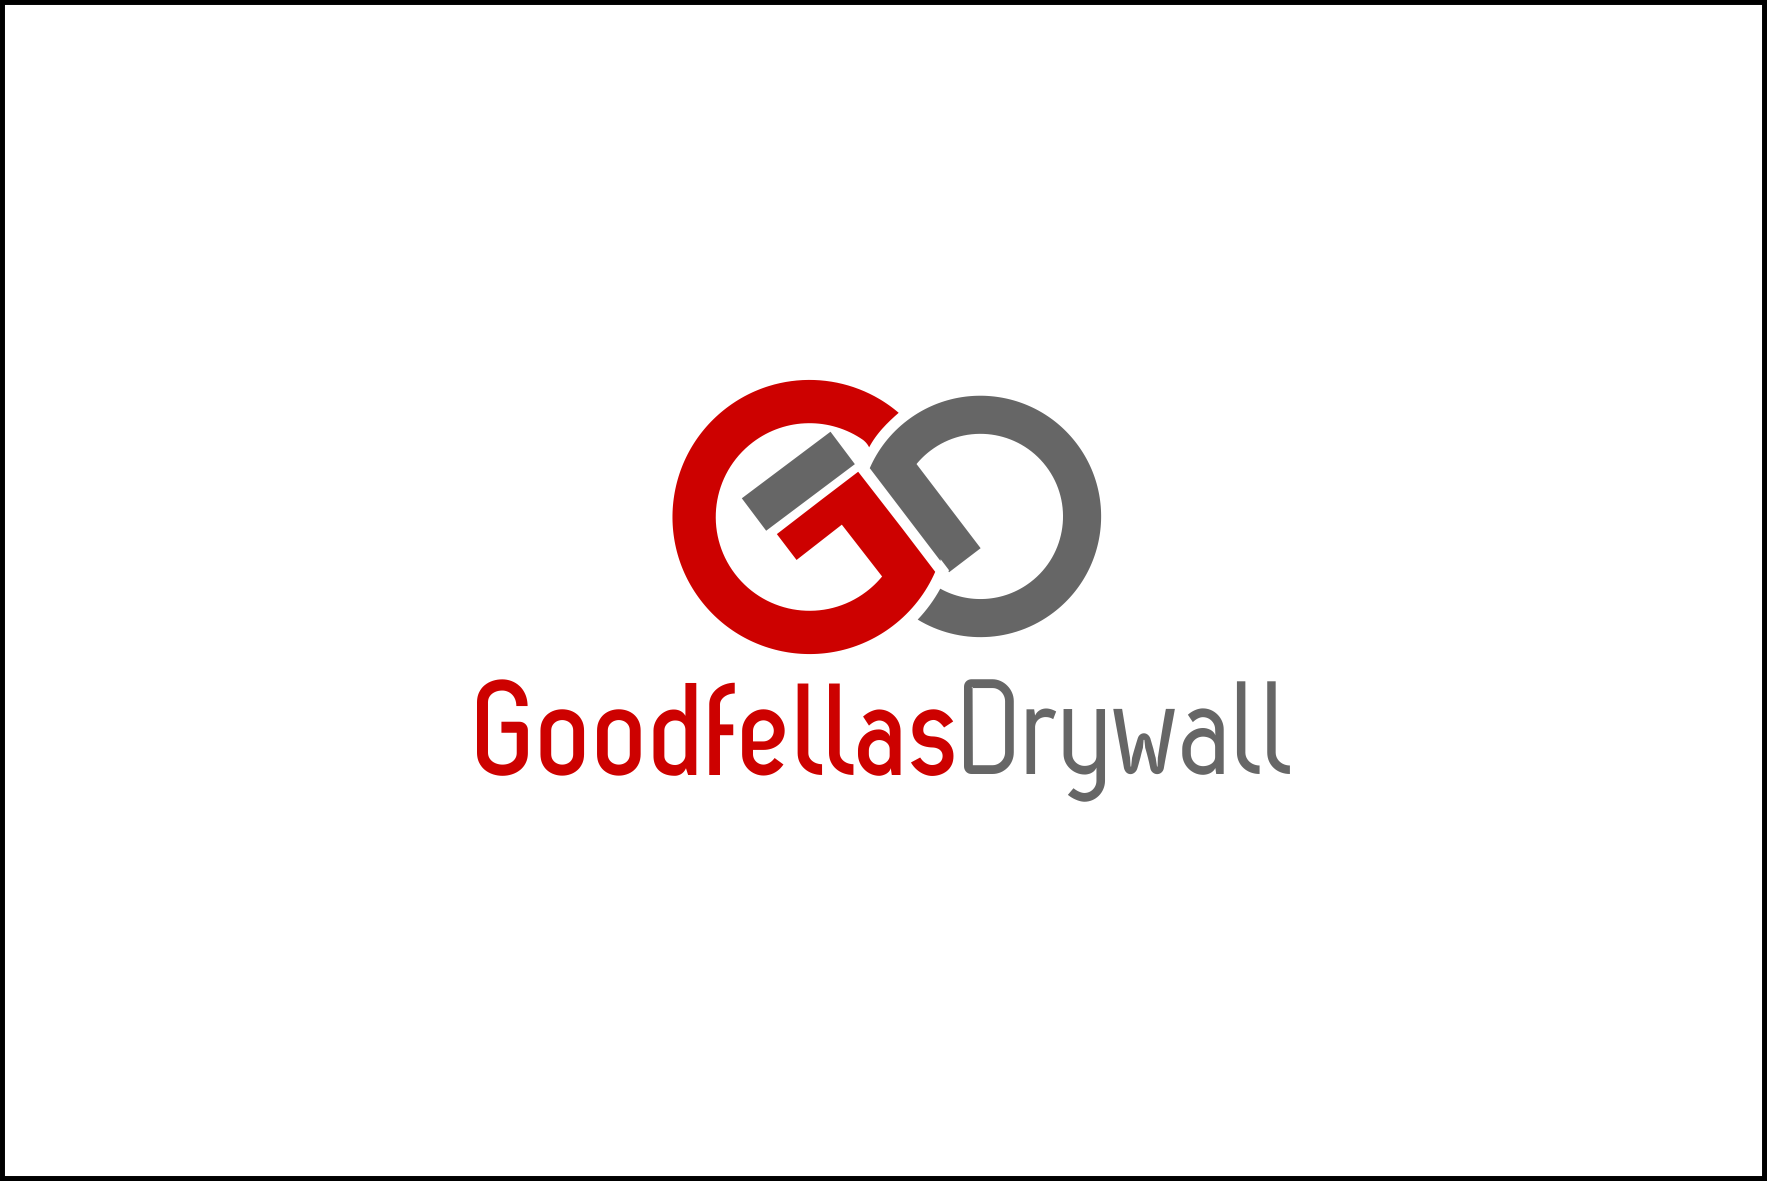 Logo Design by ningnung - Entry No. 59 in the Logo Design Contest Creative Logo Design for Goodfellas Drywall.